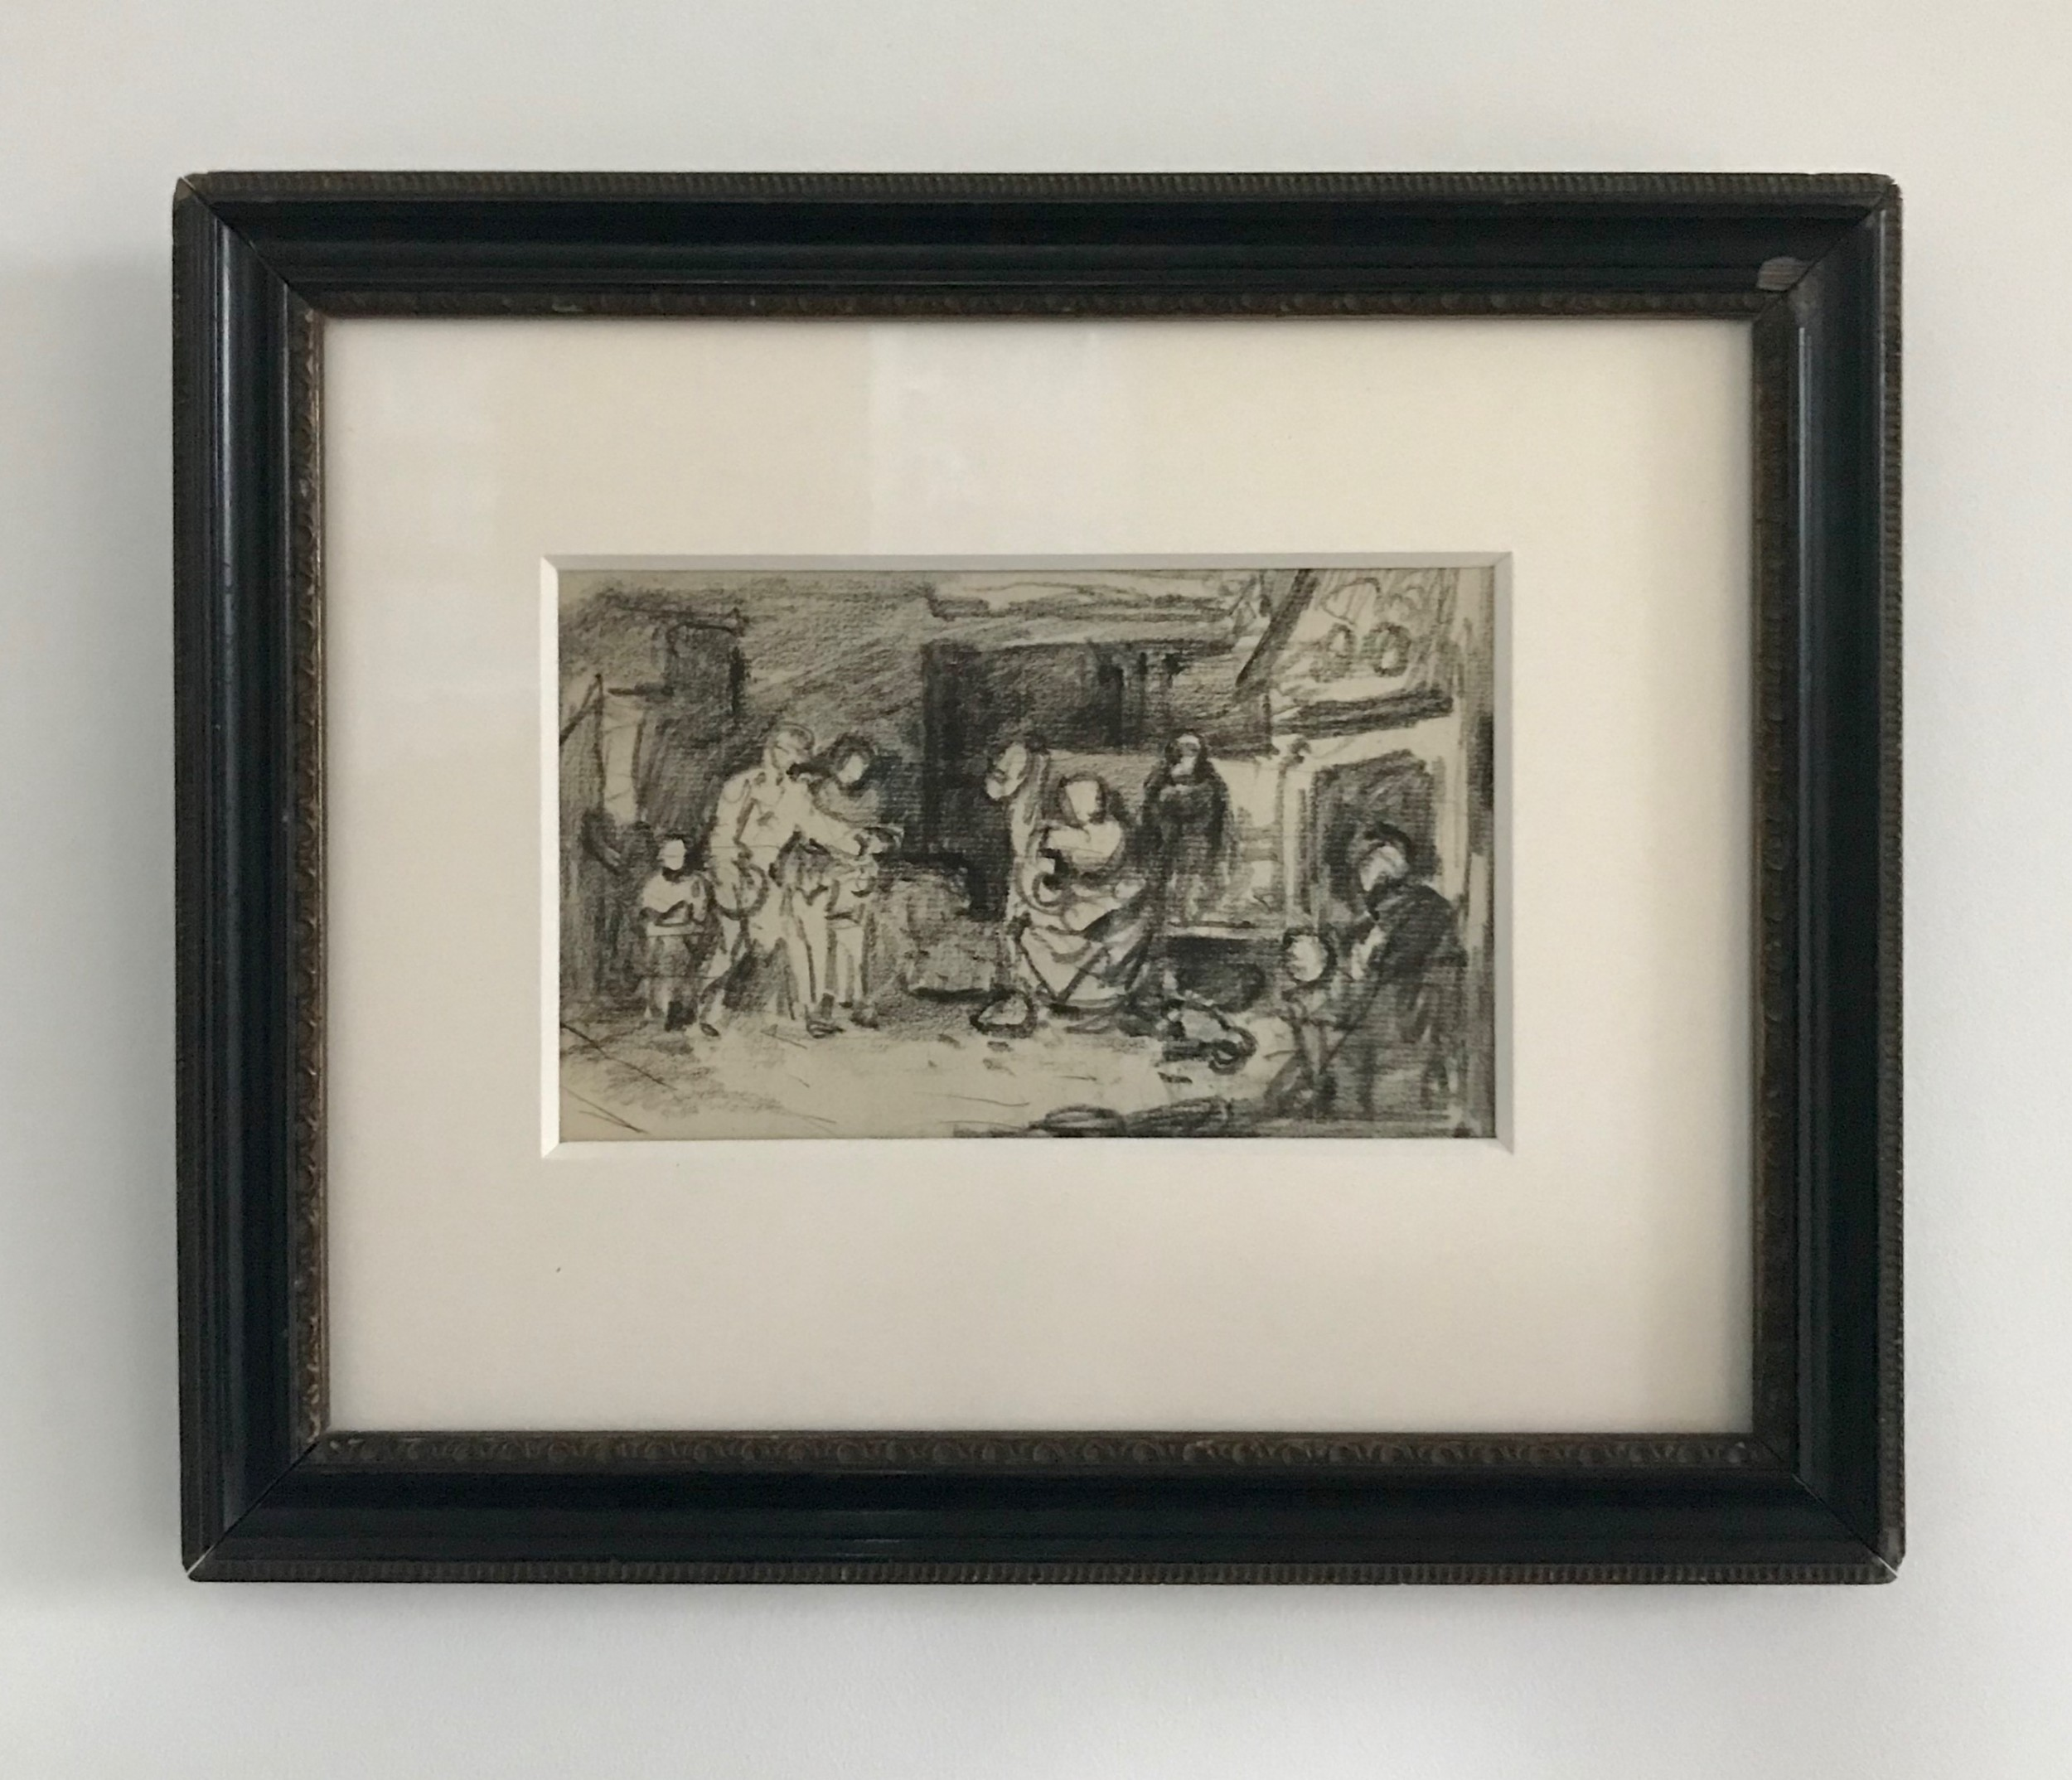 an intricate compositional drawing by andrew geddes ara probably blind man's buff early 19th century scottish drawing likely inspired by sir david wilkie